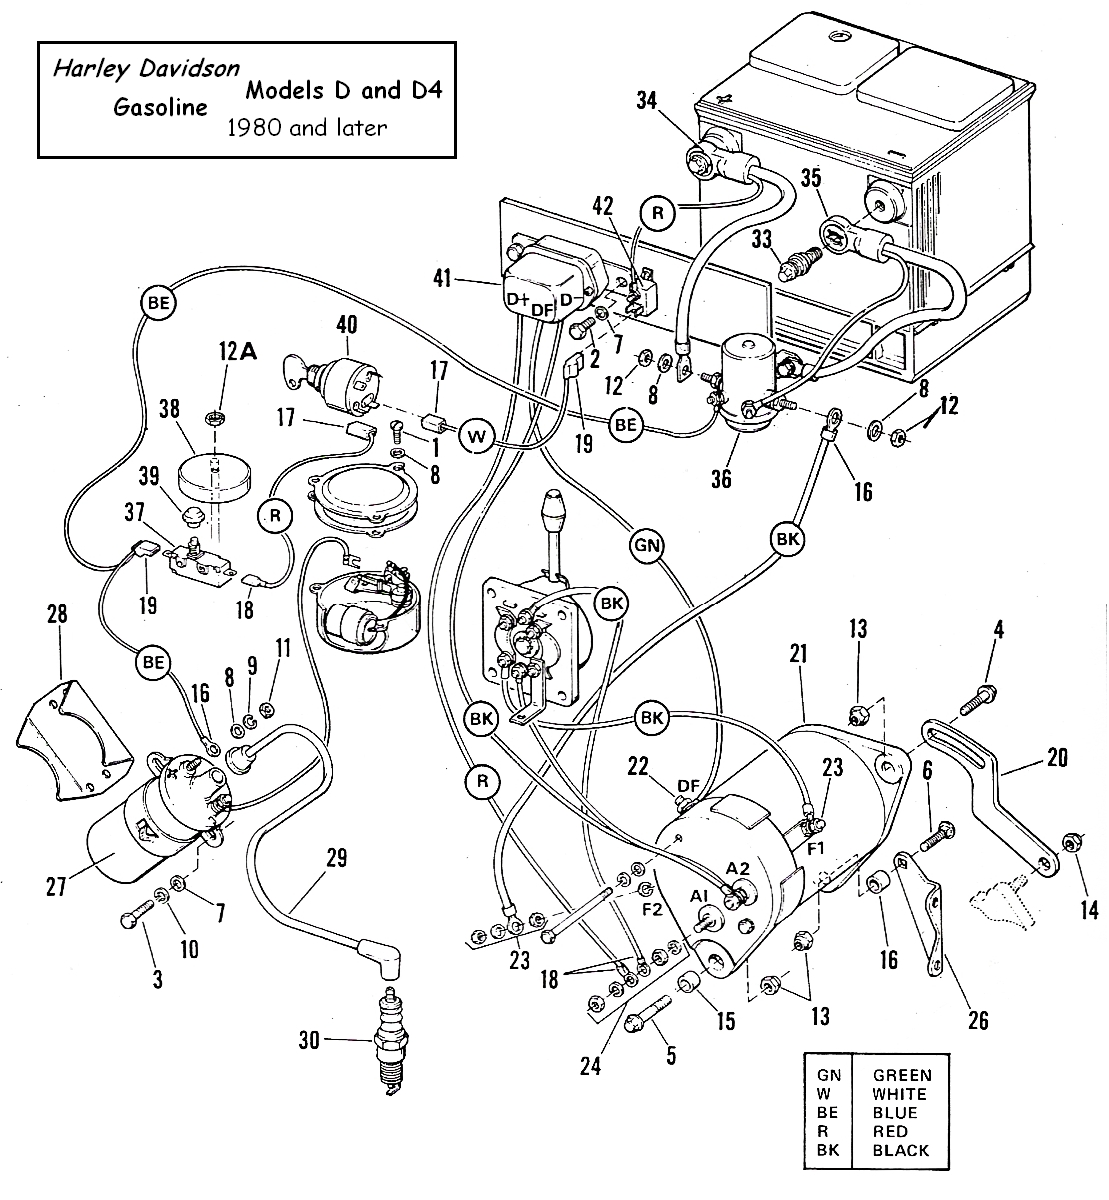 HG 101 vintagegolfcartparts com harley davidson gas golf cart wiring diagram at gsmportal.co